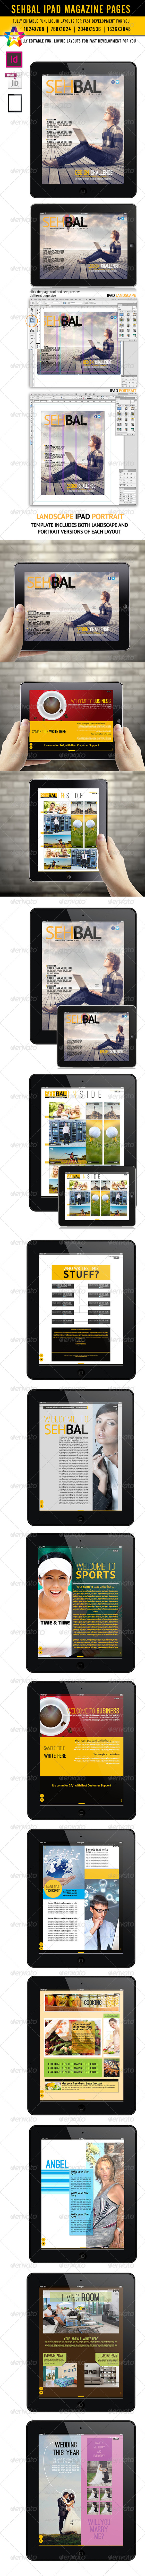 GraphicRiver Sehbal iPad Magazine Pages 6132579